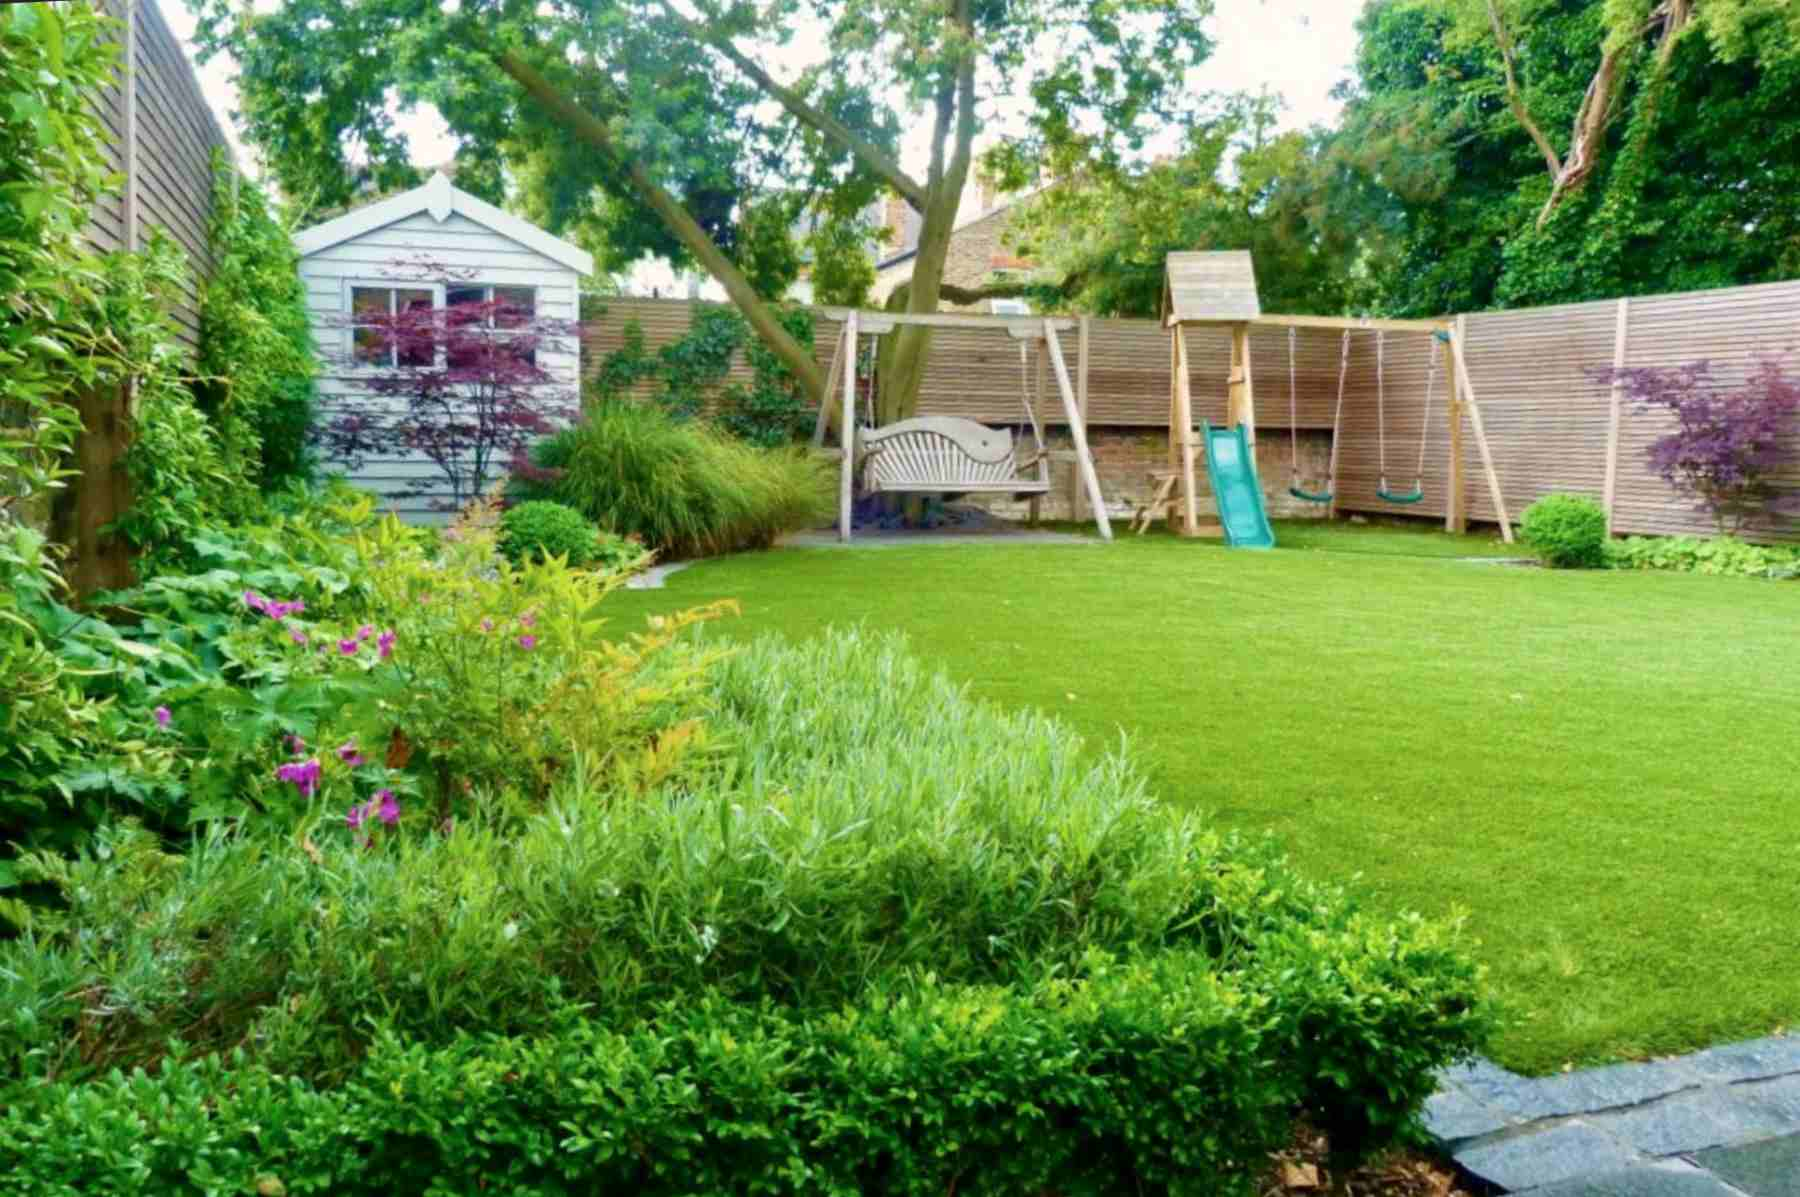 15 Fun Backyard Ideas for Kids